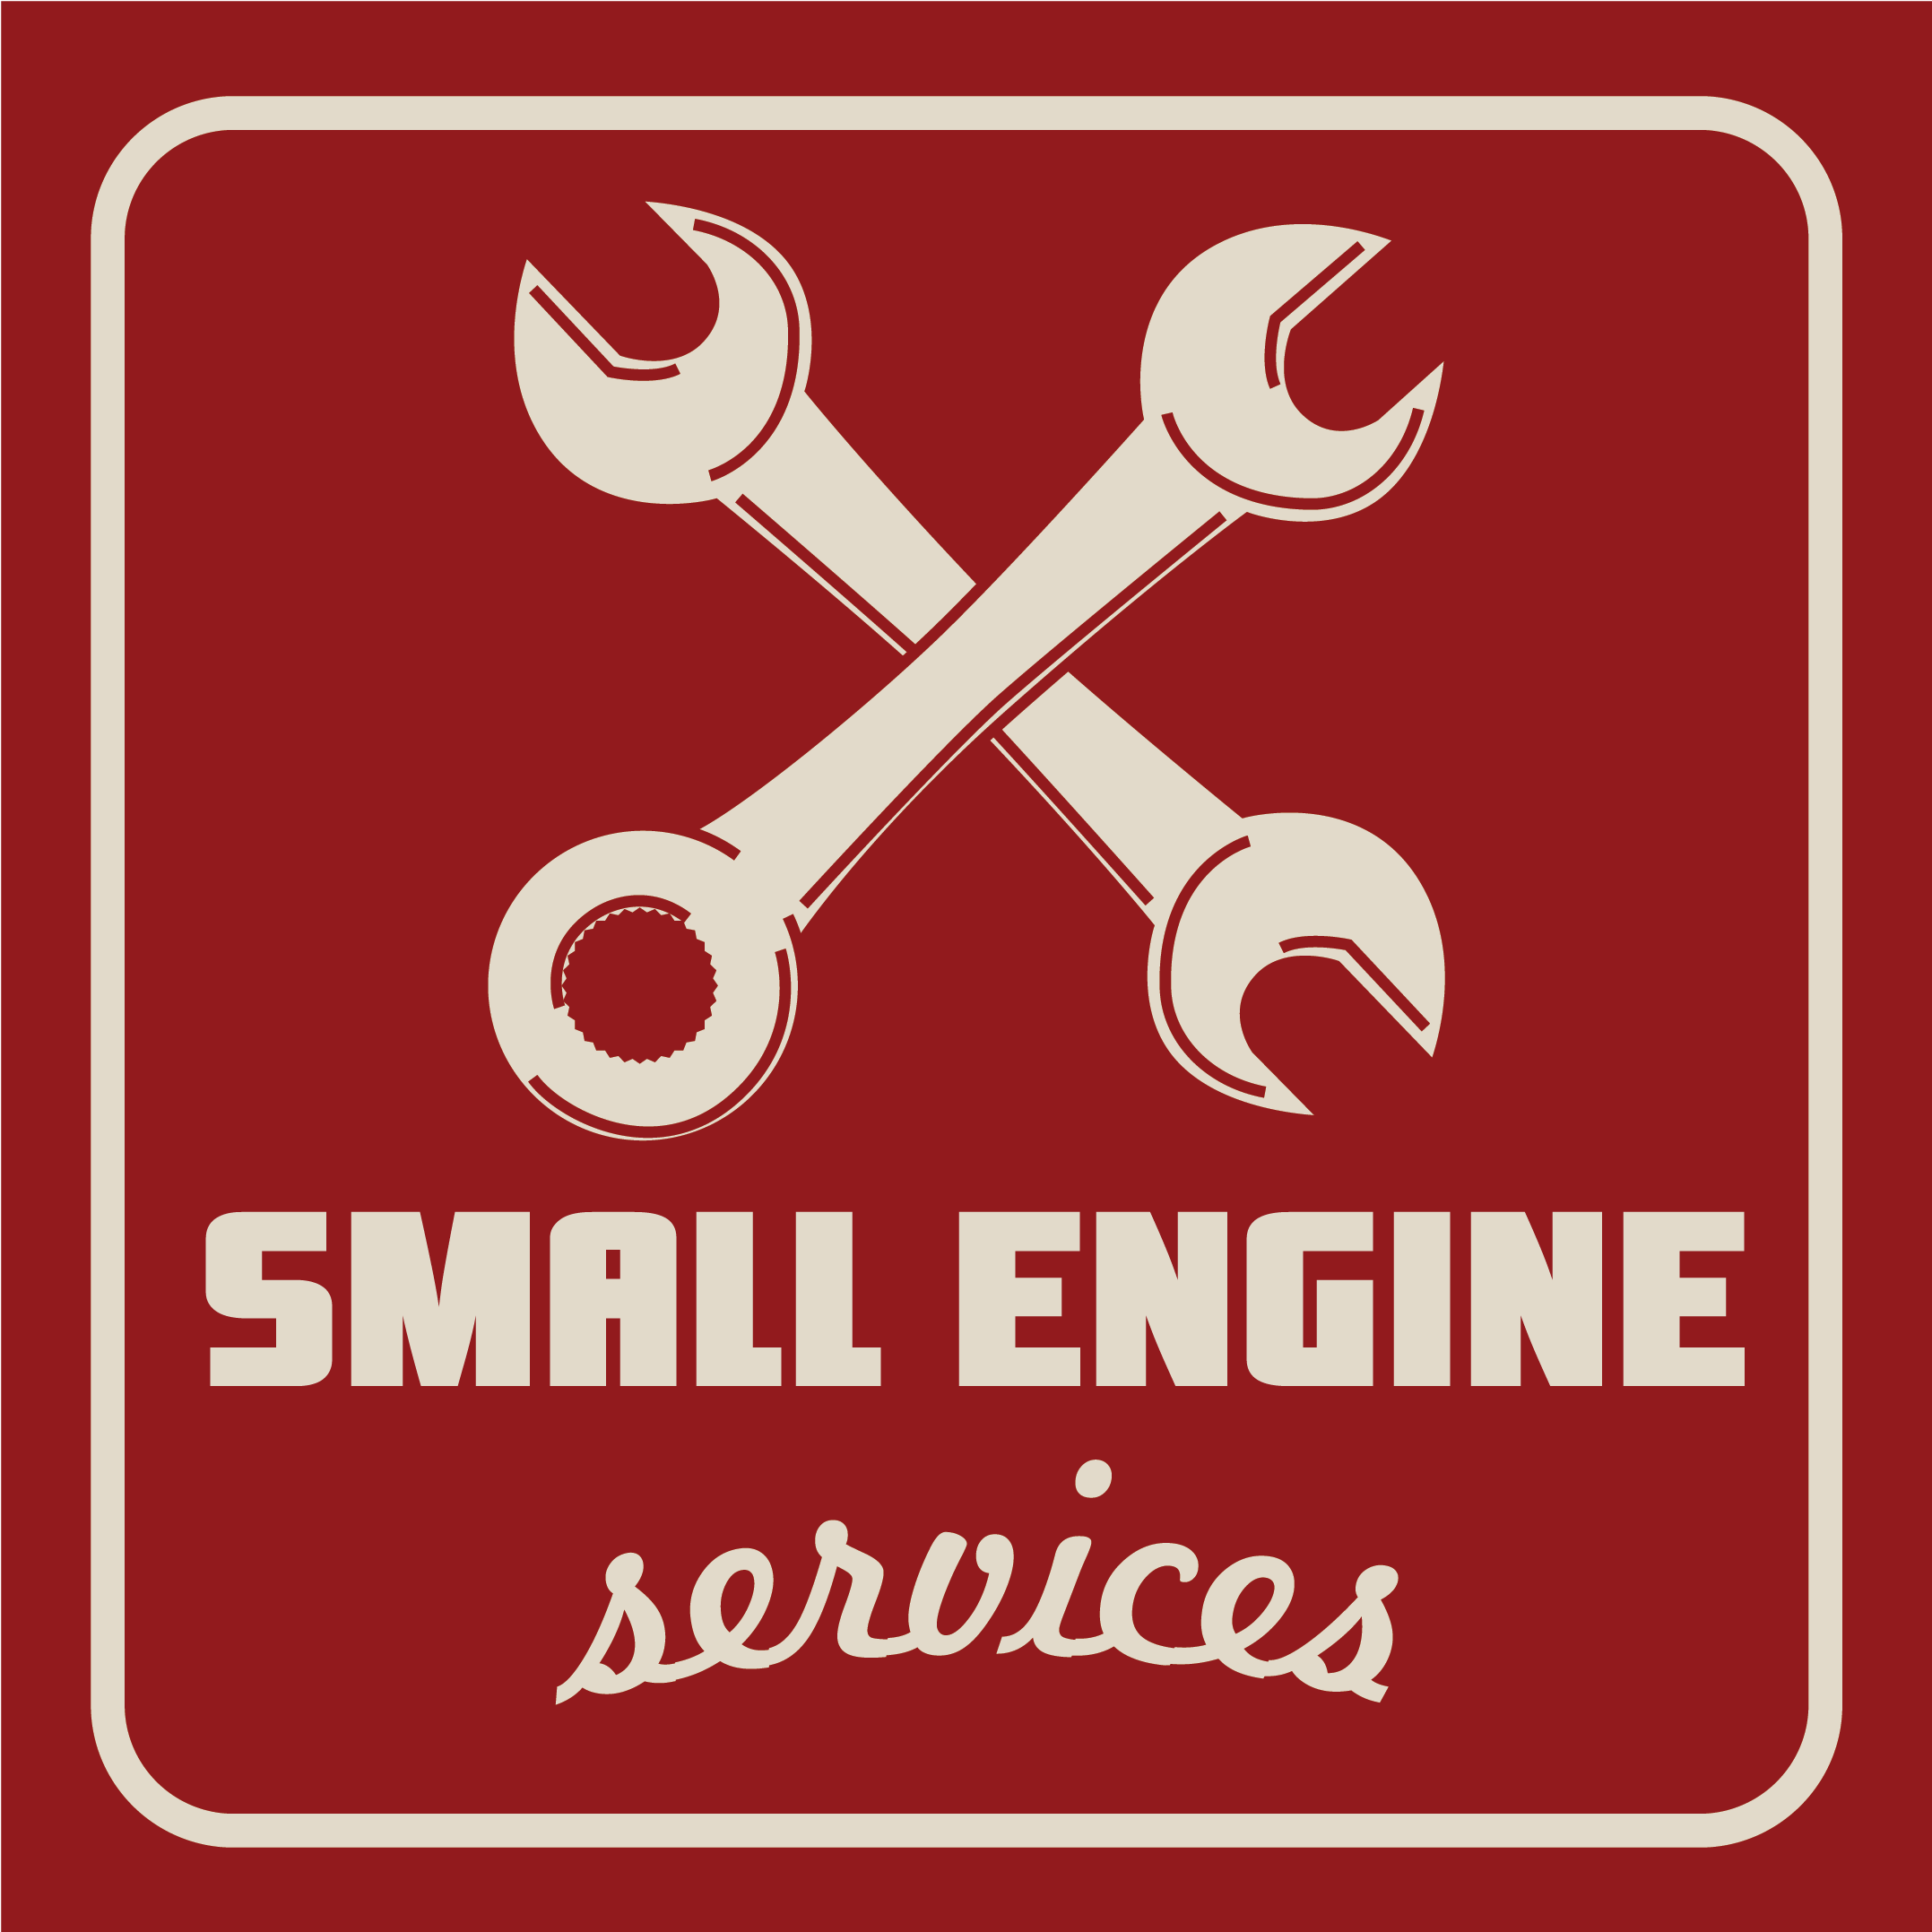 Transparent zero turn mower clipart - Small Engine Repair Business Name Ideas I Need A Hobby, - Small Engine Repair